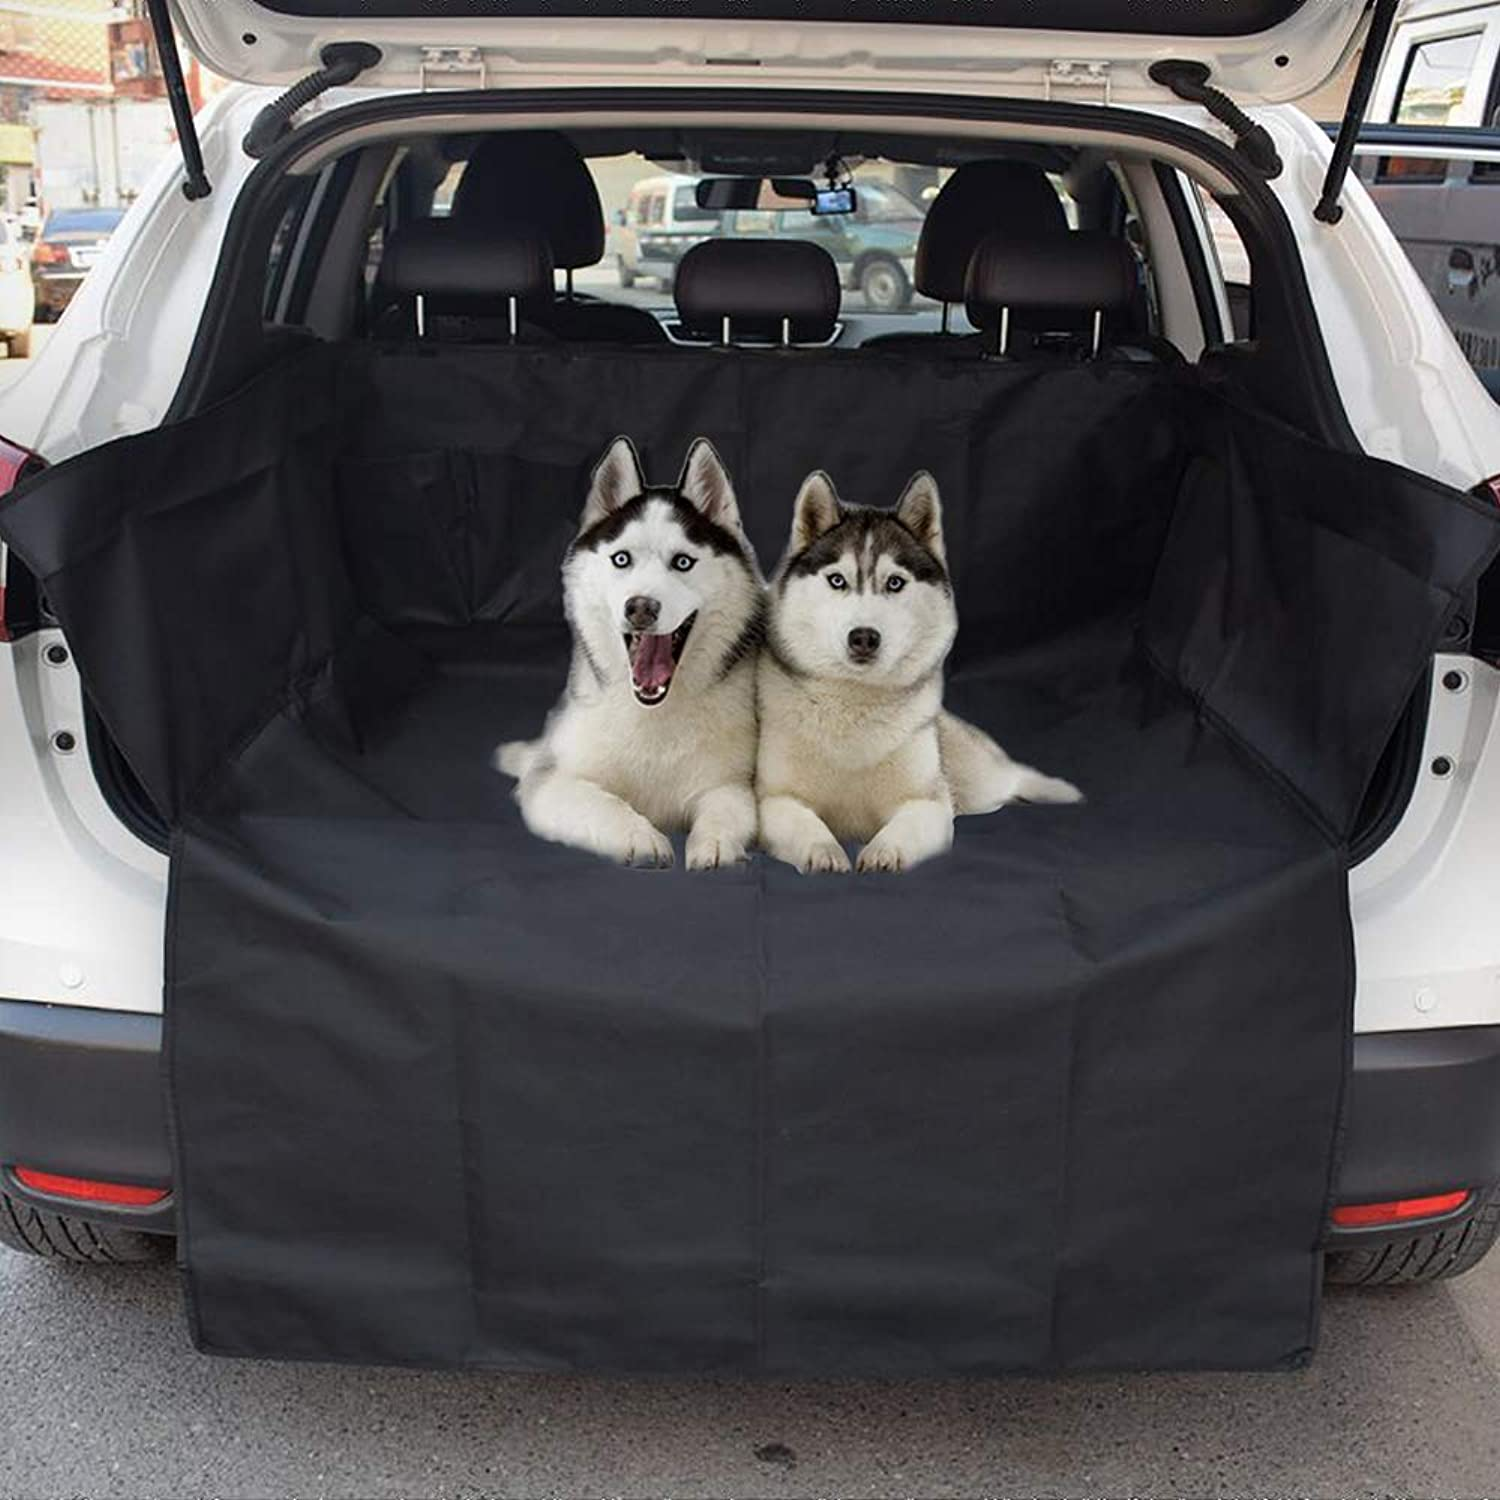 Bentolin Pet Cargo Cover & Liner for Dogs  Waterproof Washable & Nonslip Dog Car Seat Cover Universal Pet Seat Cover with Bumper Flap Predector for Cars, Trucks & SUVs